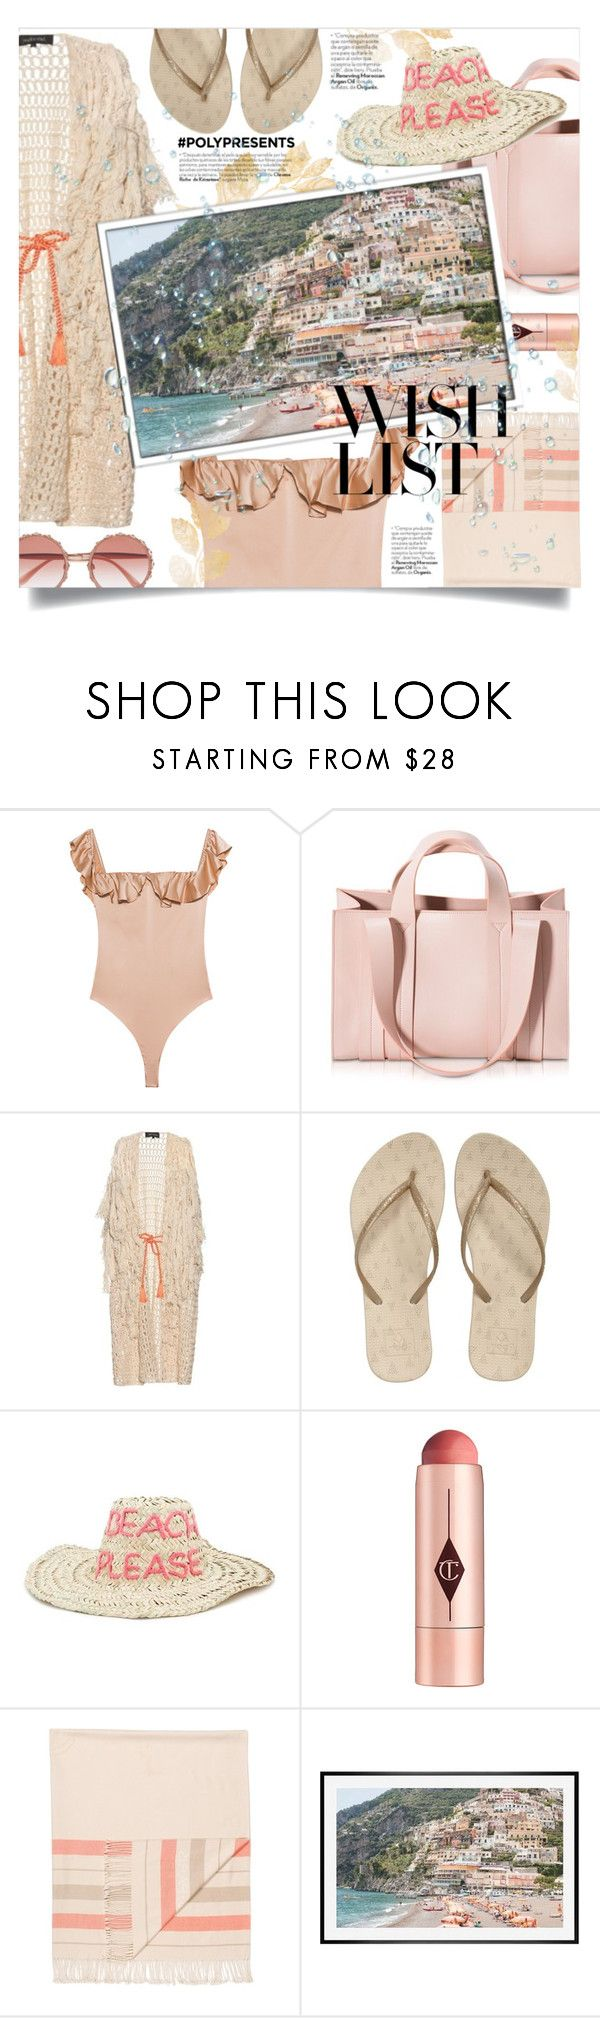 """#PolyPresents: Wish List"" by devaanggraenii ❤ liked on Polyvore featuring For Love & Lemons, Corto Moltedo, Tabula Rasa, Reef, Forever 21, Charlotte Tilbury, Hermès, Pottery Barn, Dolce&Gabbana and contestentry"